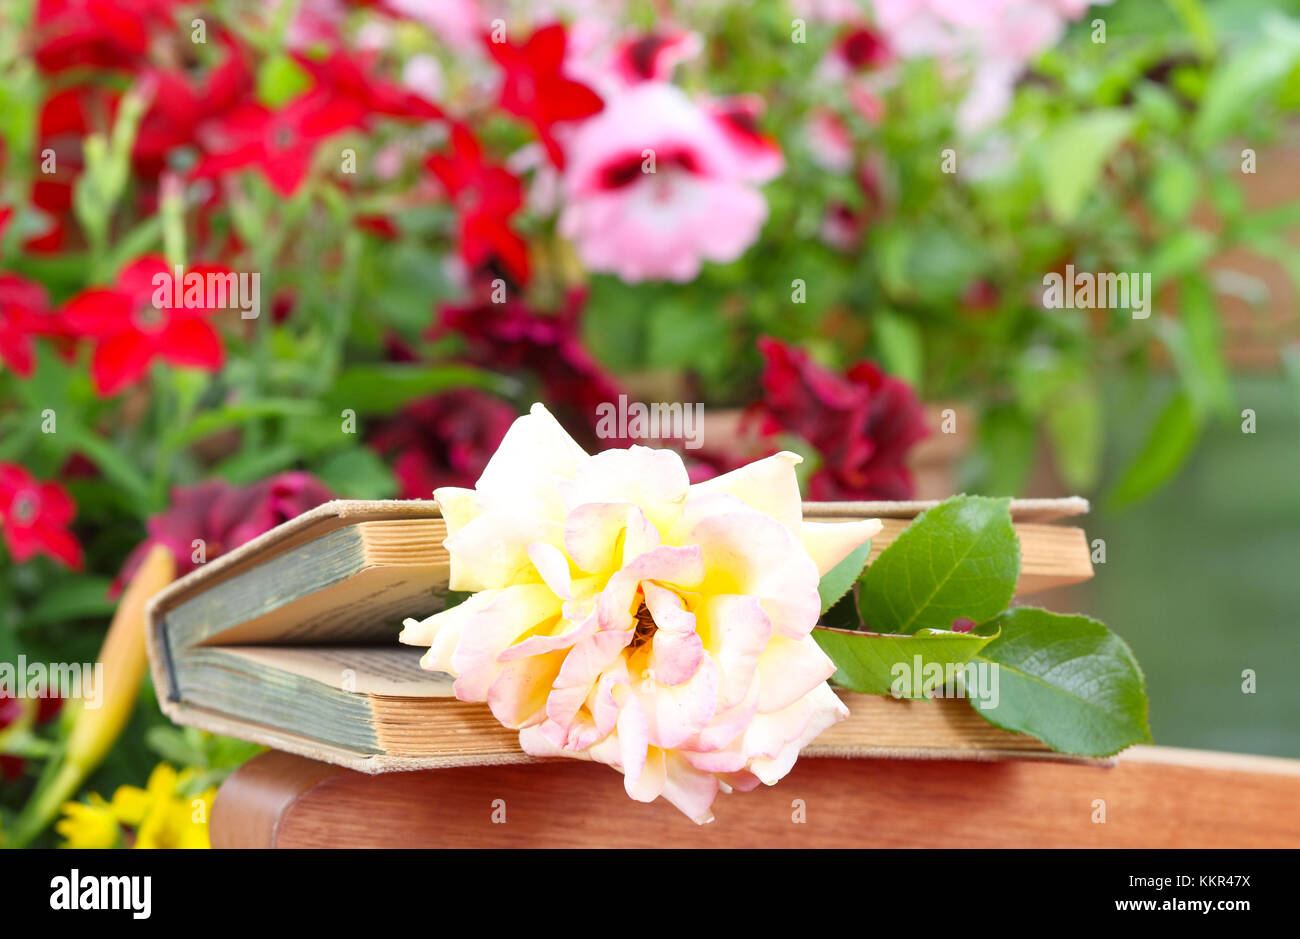 Love story, love greeting, rose in the book - Stock Image